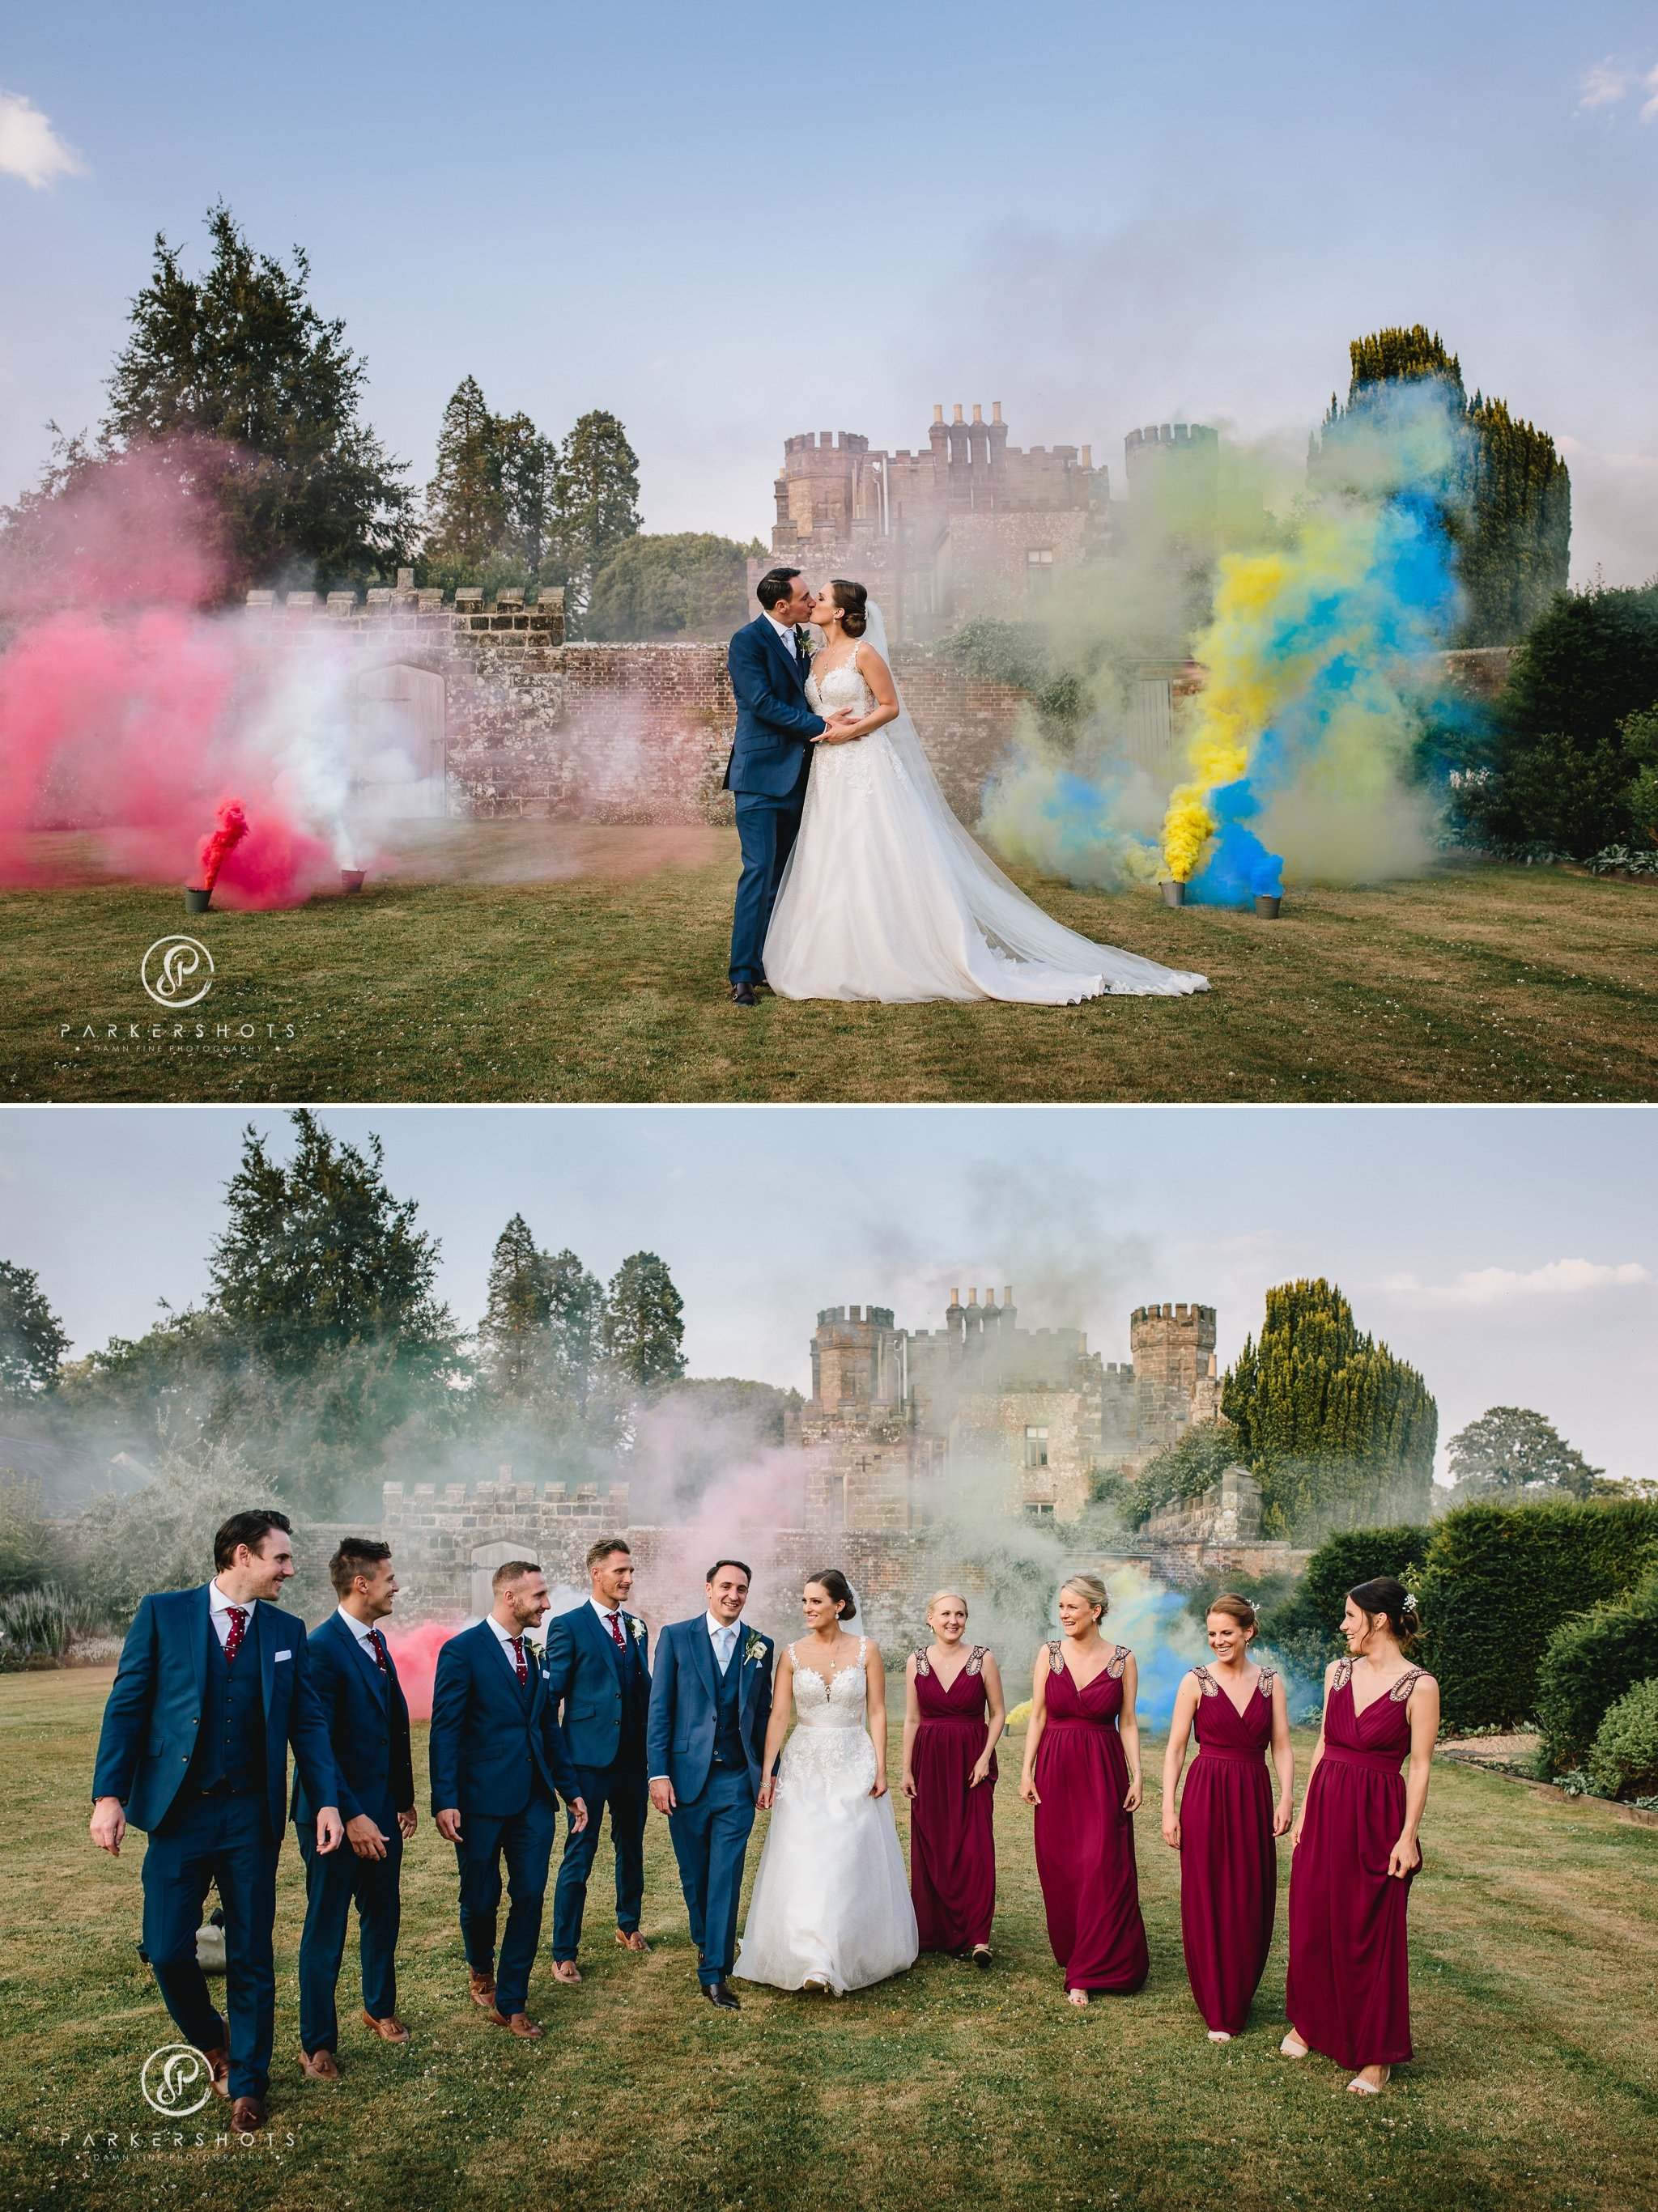 Wadhurst Castle Wedding Photographer - Portraits of couple in grounds of Wadhurst Castle with wedding party